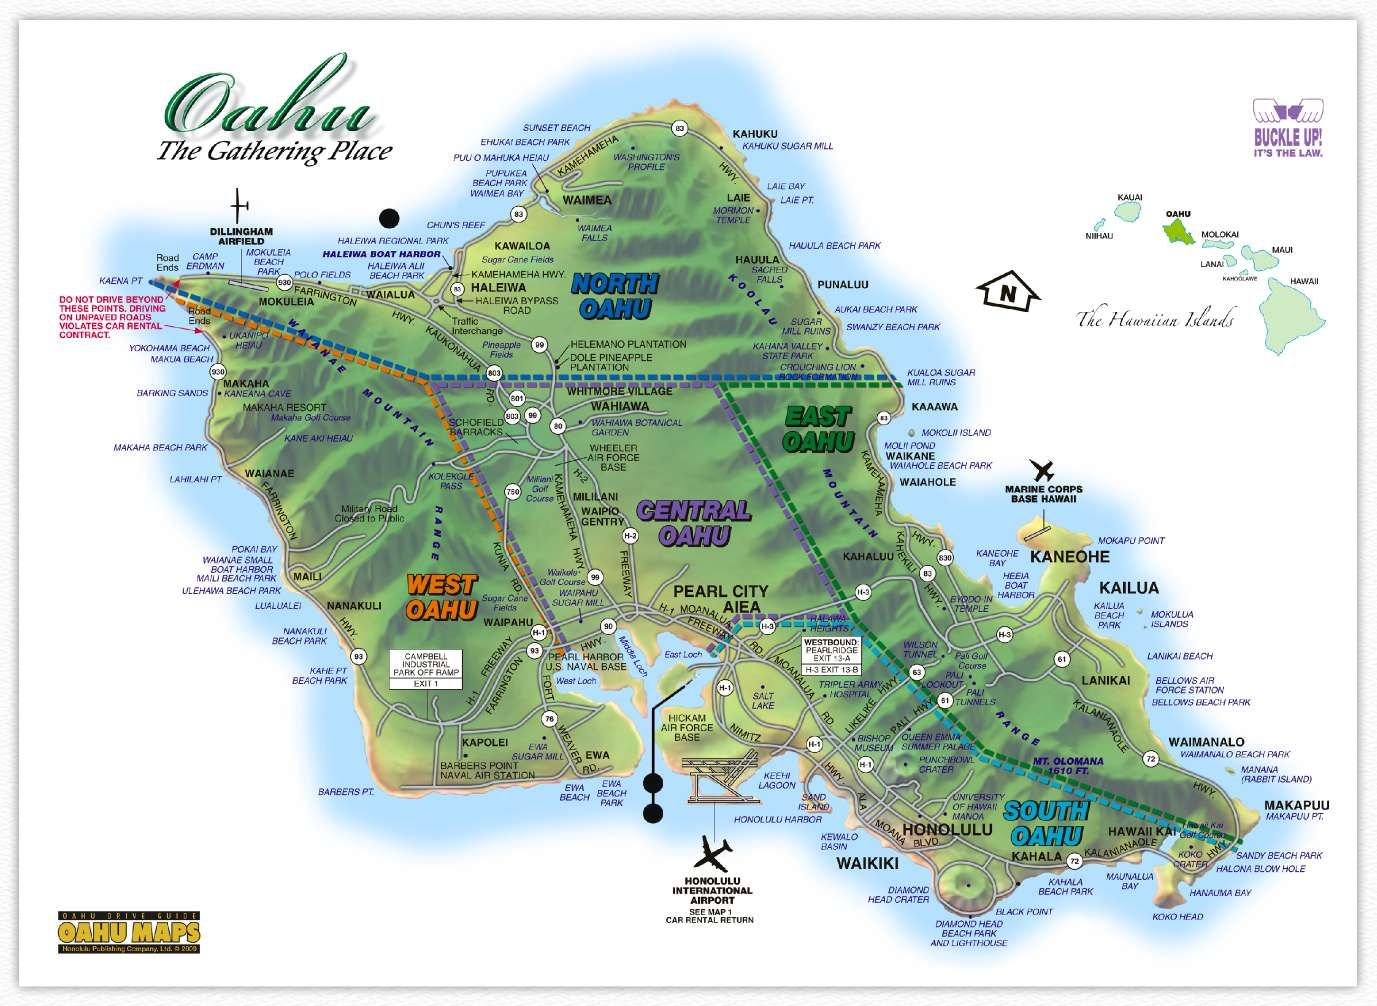 Hawaii Maps Oahu Island Map This highly detailed rental car